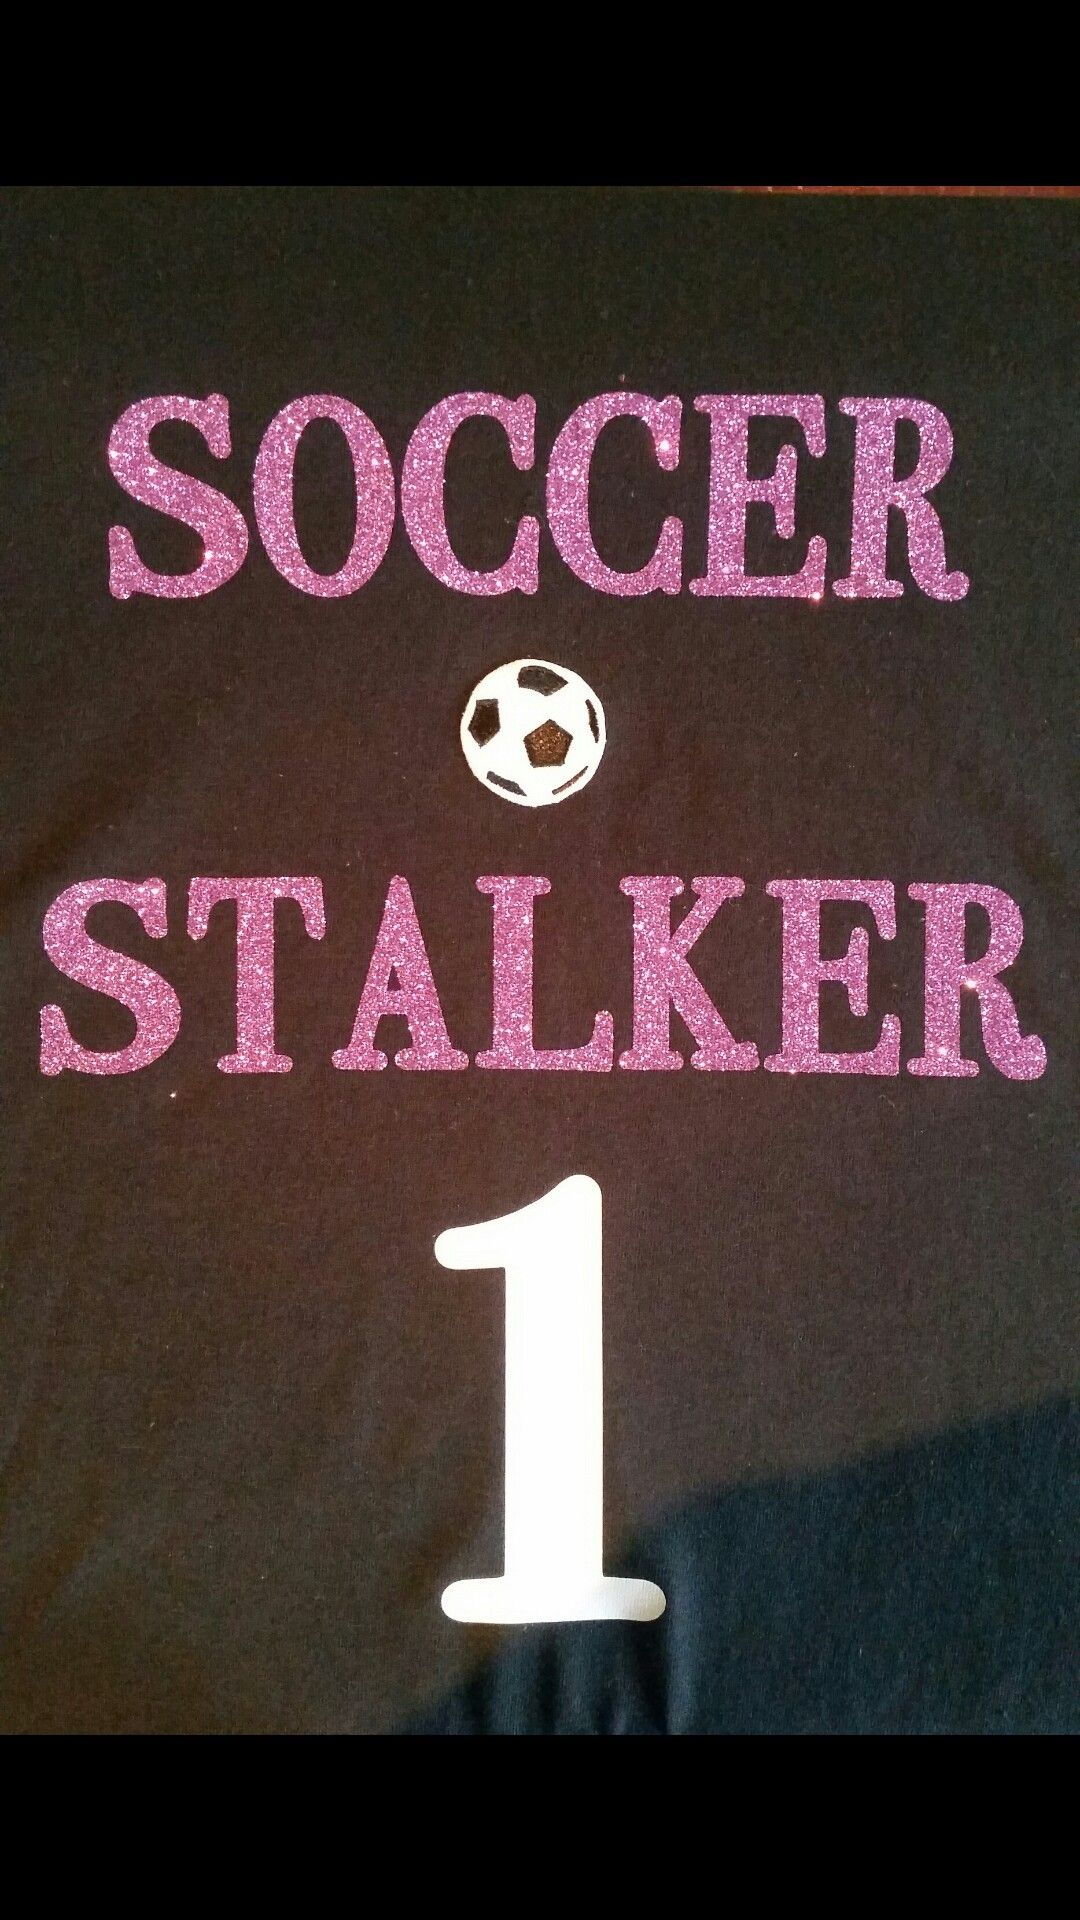 diy used the cricut expression 2 to cut out iron on vinyl letters soccer ball is an iron on patch